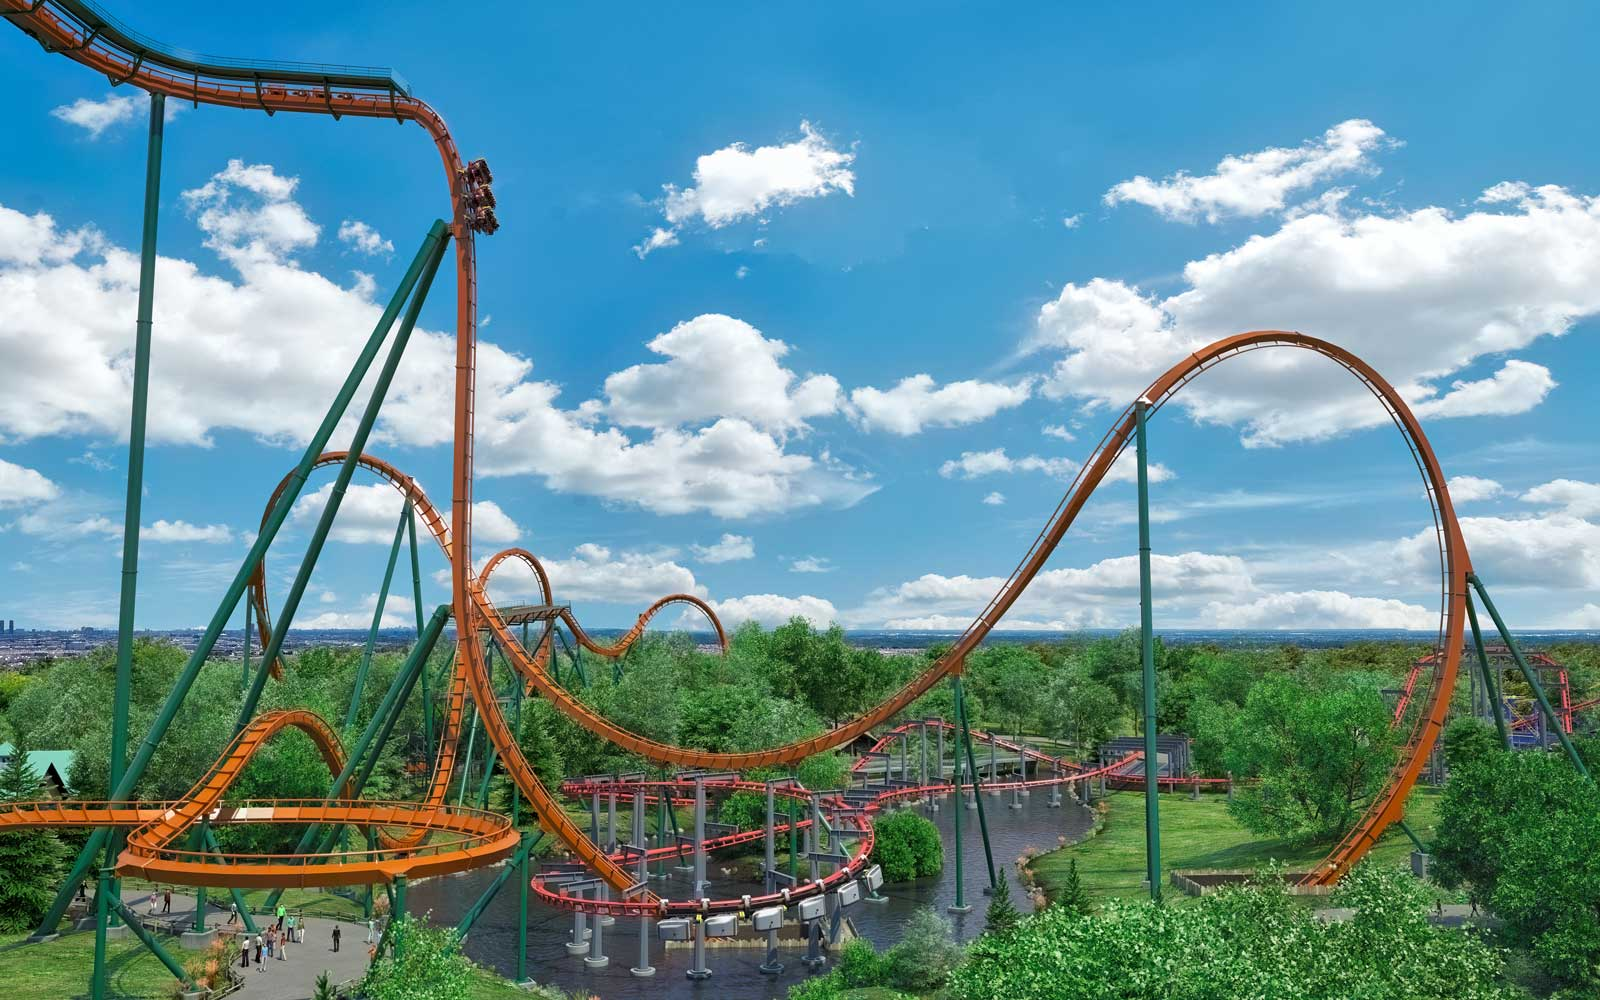 Yukon Striker at Canada's Wonderland World Record Roller Coaster